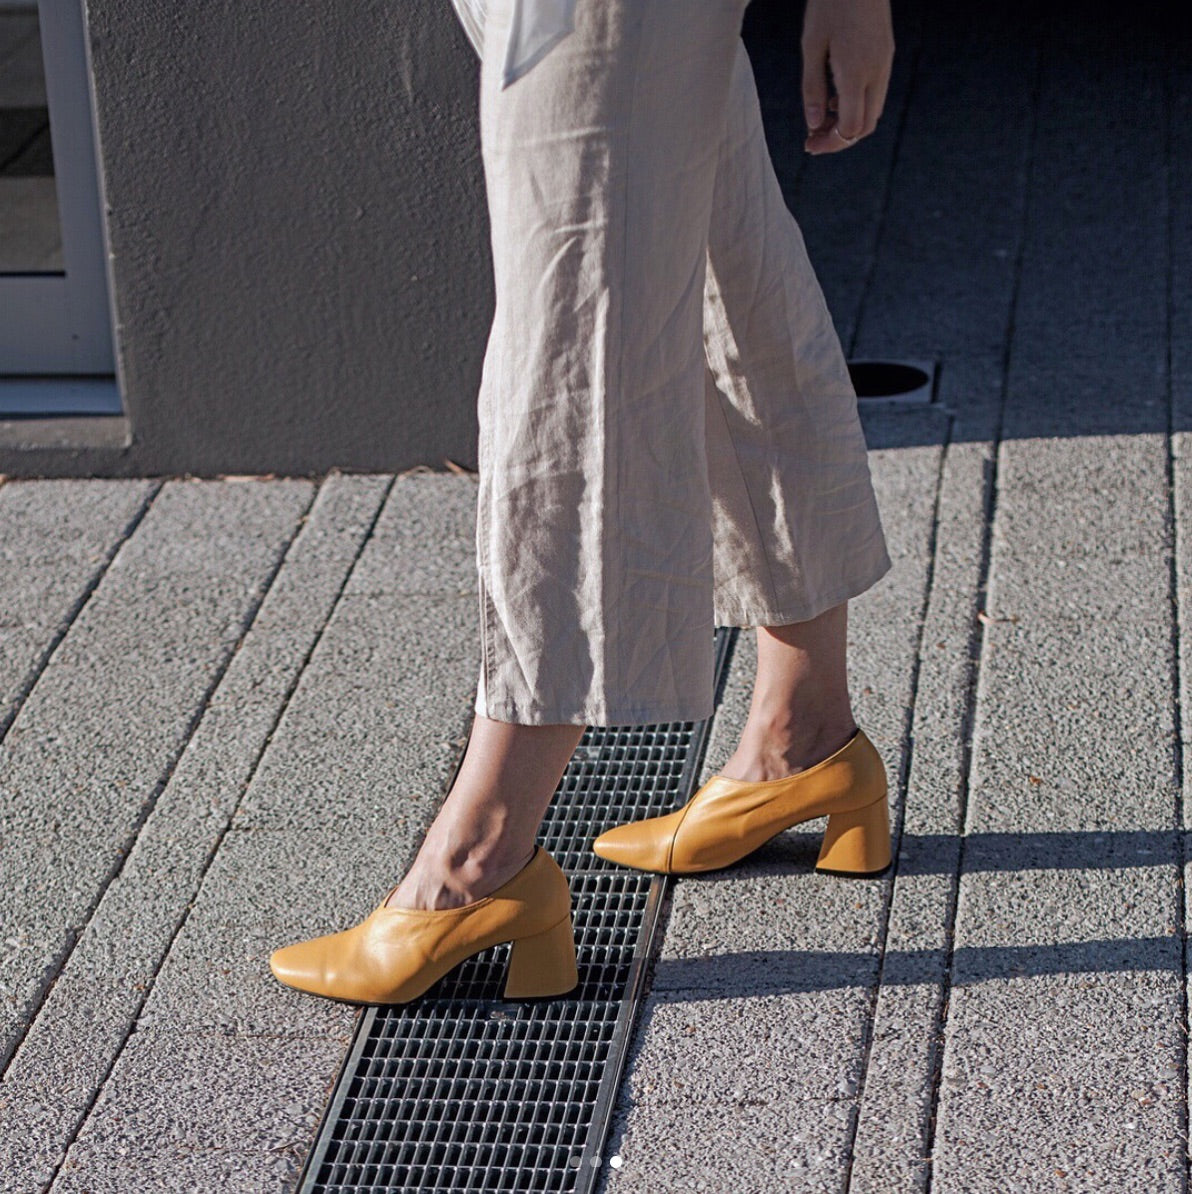 EOD by ASHLEY LIM Tara Yellow Leather Pumps worn by Jenelle Witty (@inspiringwit)